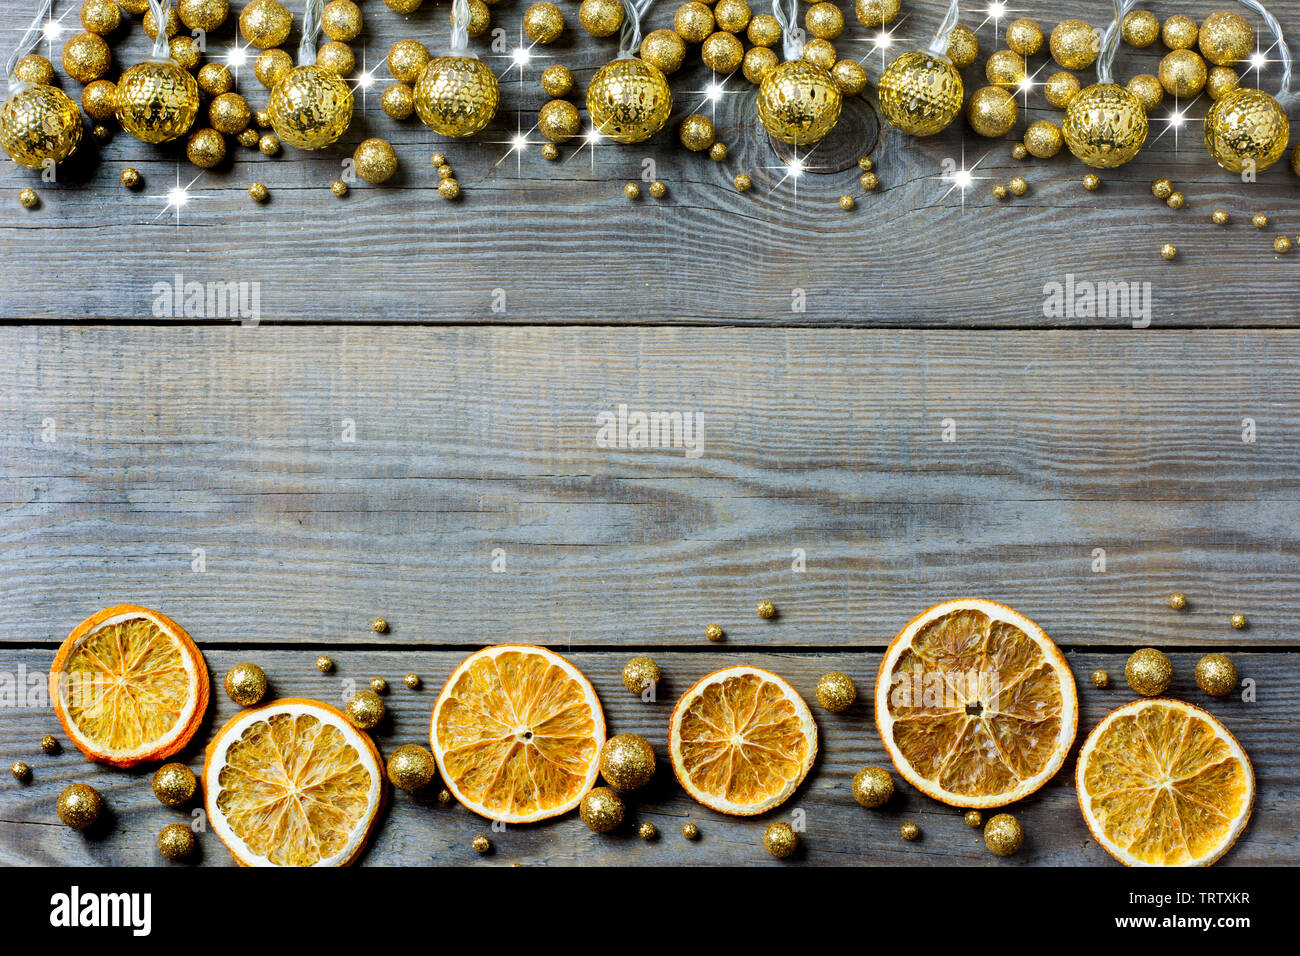 Christmas composition with orange slices, golden lights, golden glitter balls and white stars on wooden background - place for text - Stock Image